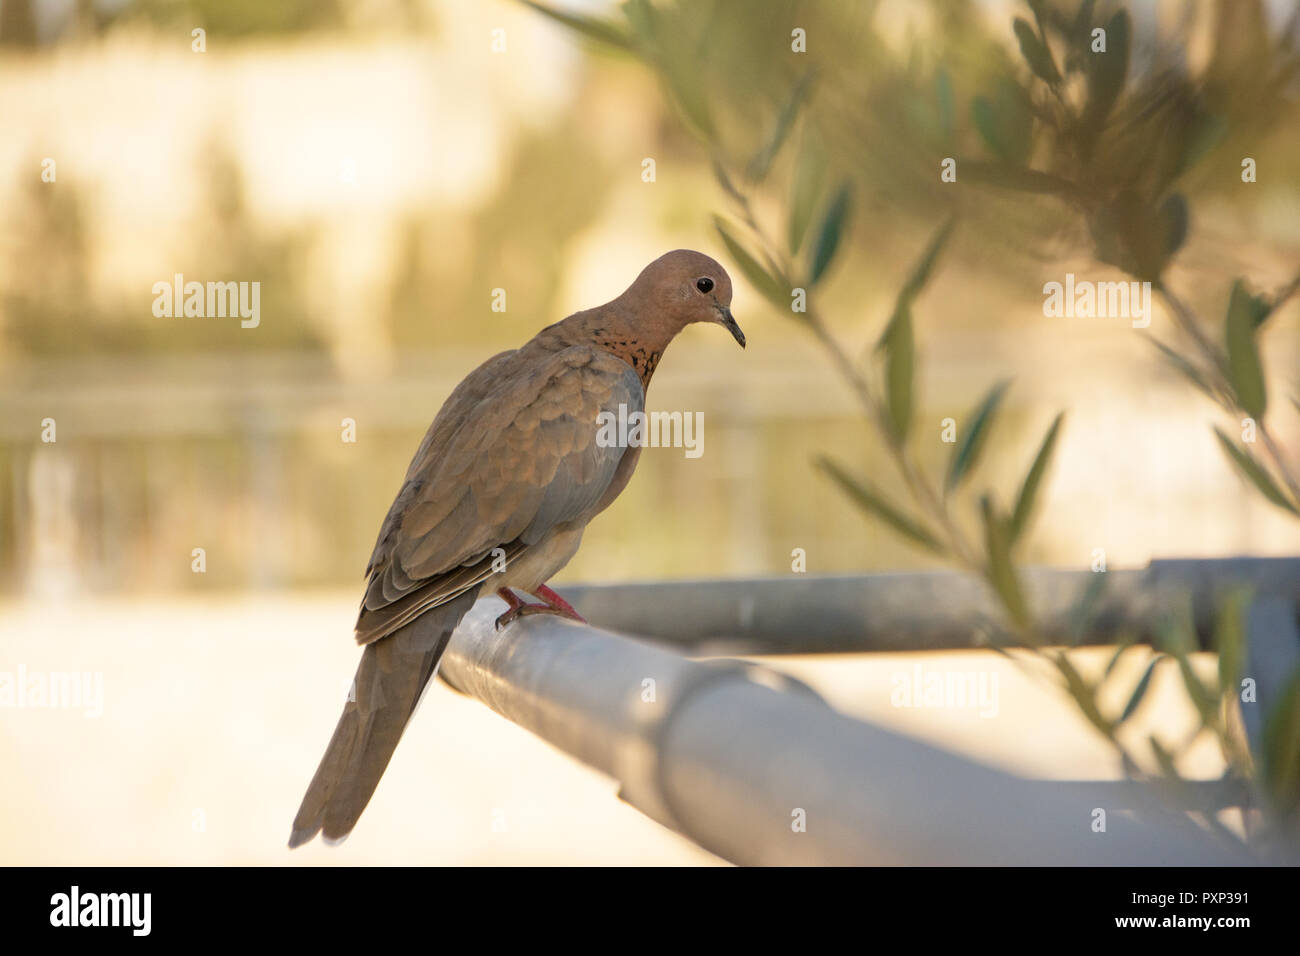 Taupe Dans Le Jardin taupe animal stock photos & taupe animal stock images - alamy